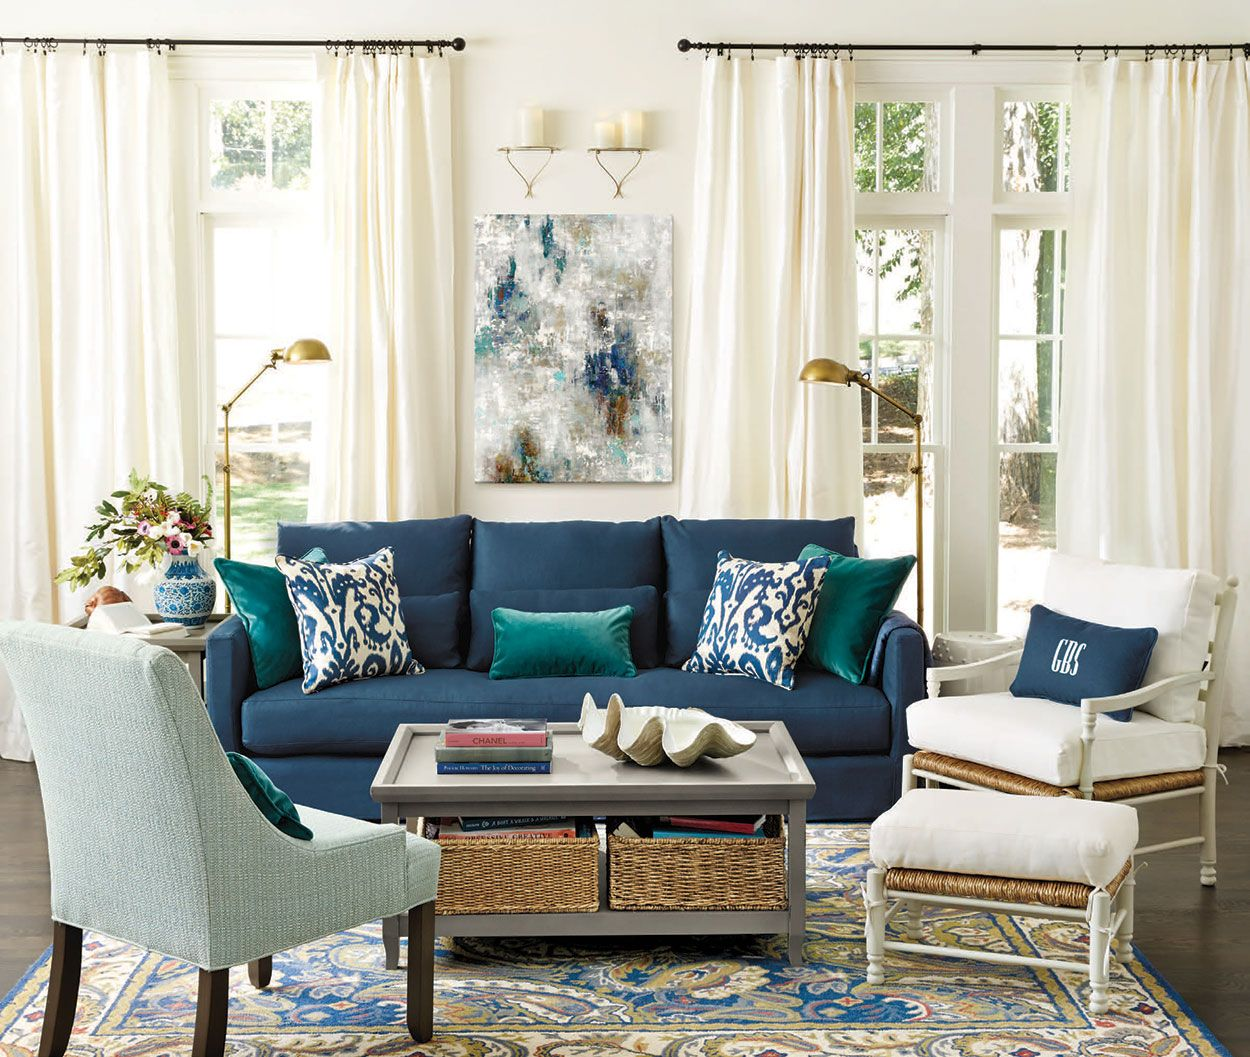 Living Rooms Ideas For Decorating Blue Couch Living Room Blue Sofas Living Room Blue Sofa Living